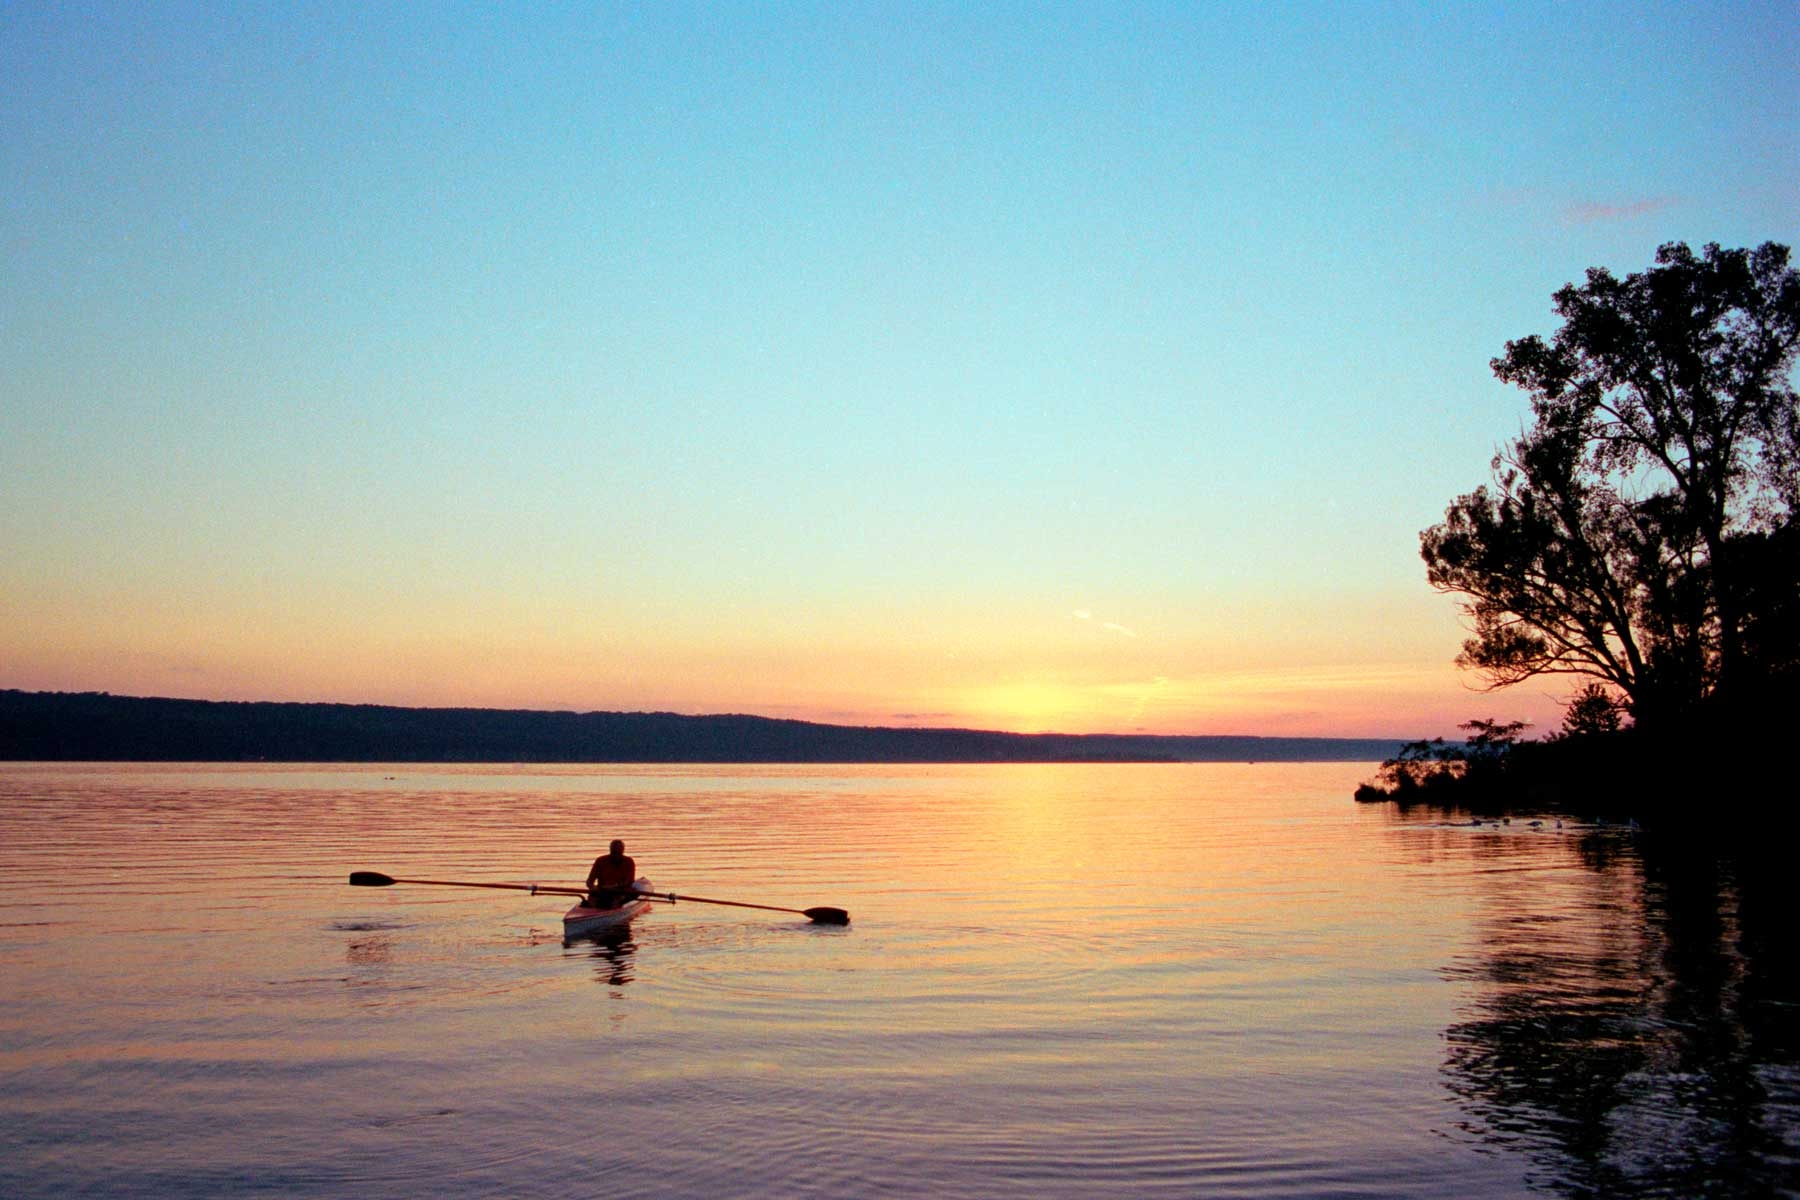 Silhouette of Man rowing Boat on Lake at Sunset